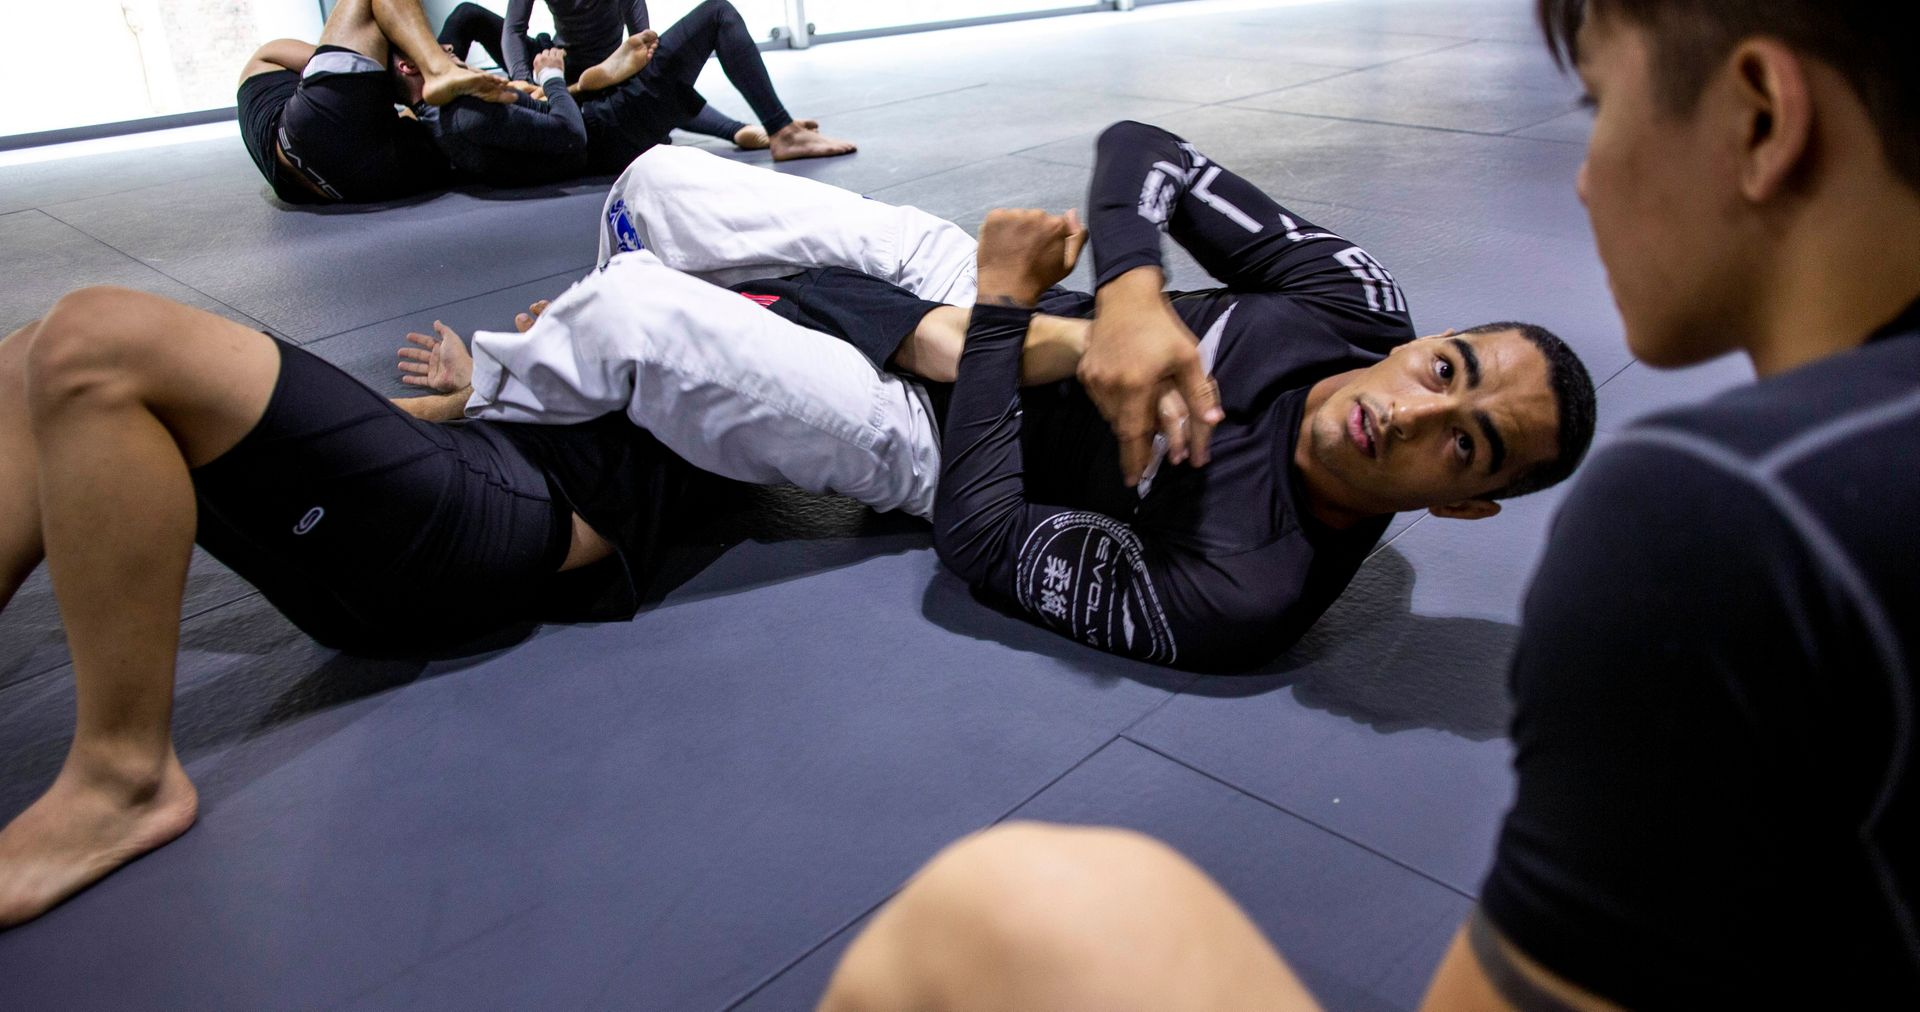 a person performing an armbar in BJJ